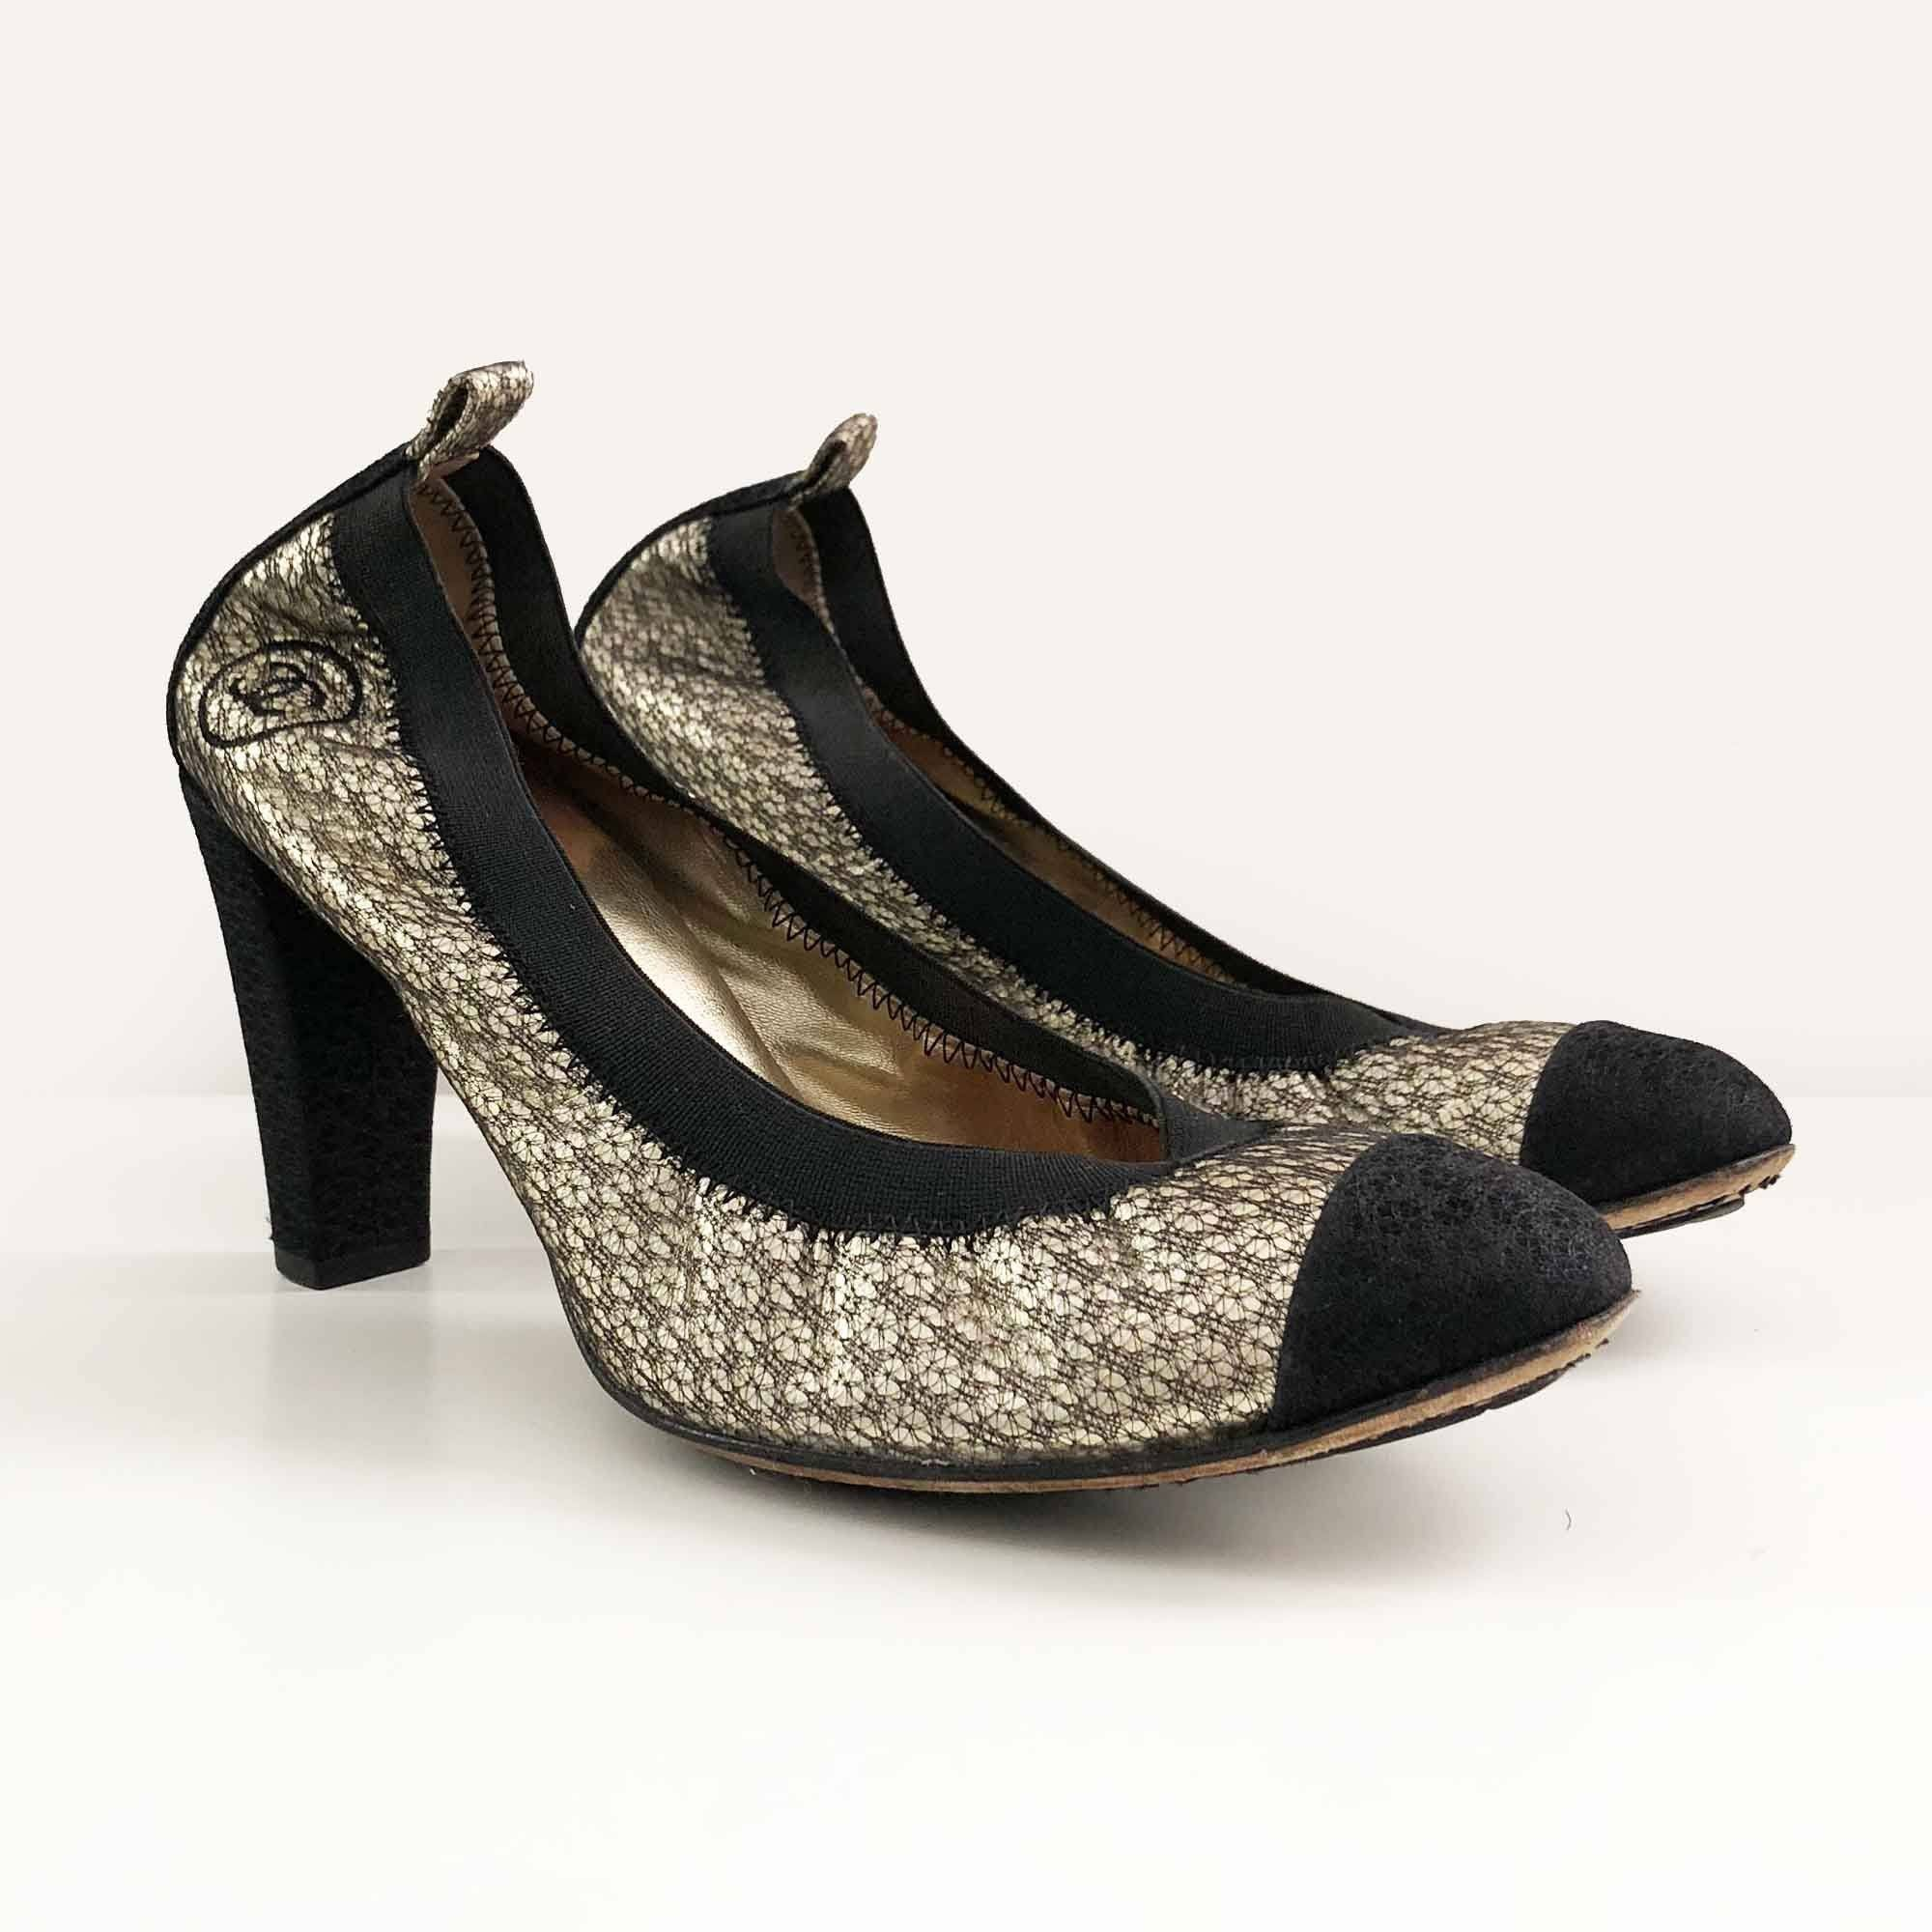 Chanel Metallic Leather and Mesh Ballerina Pumps